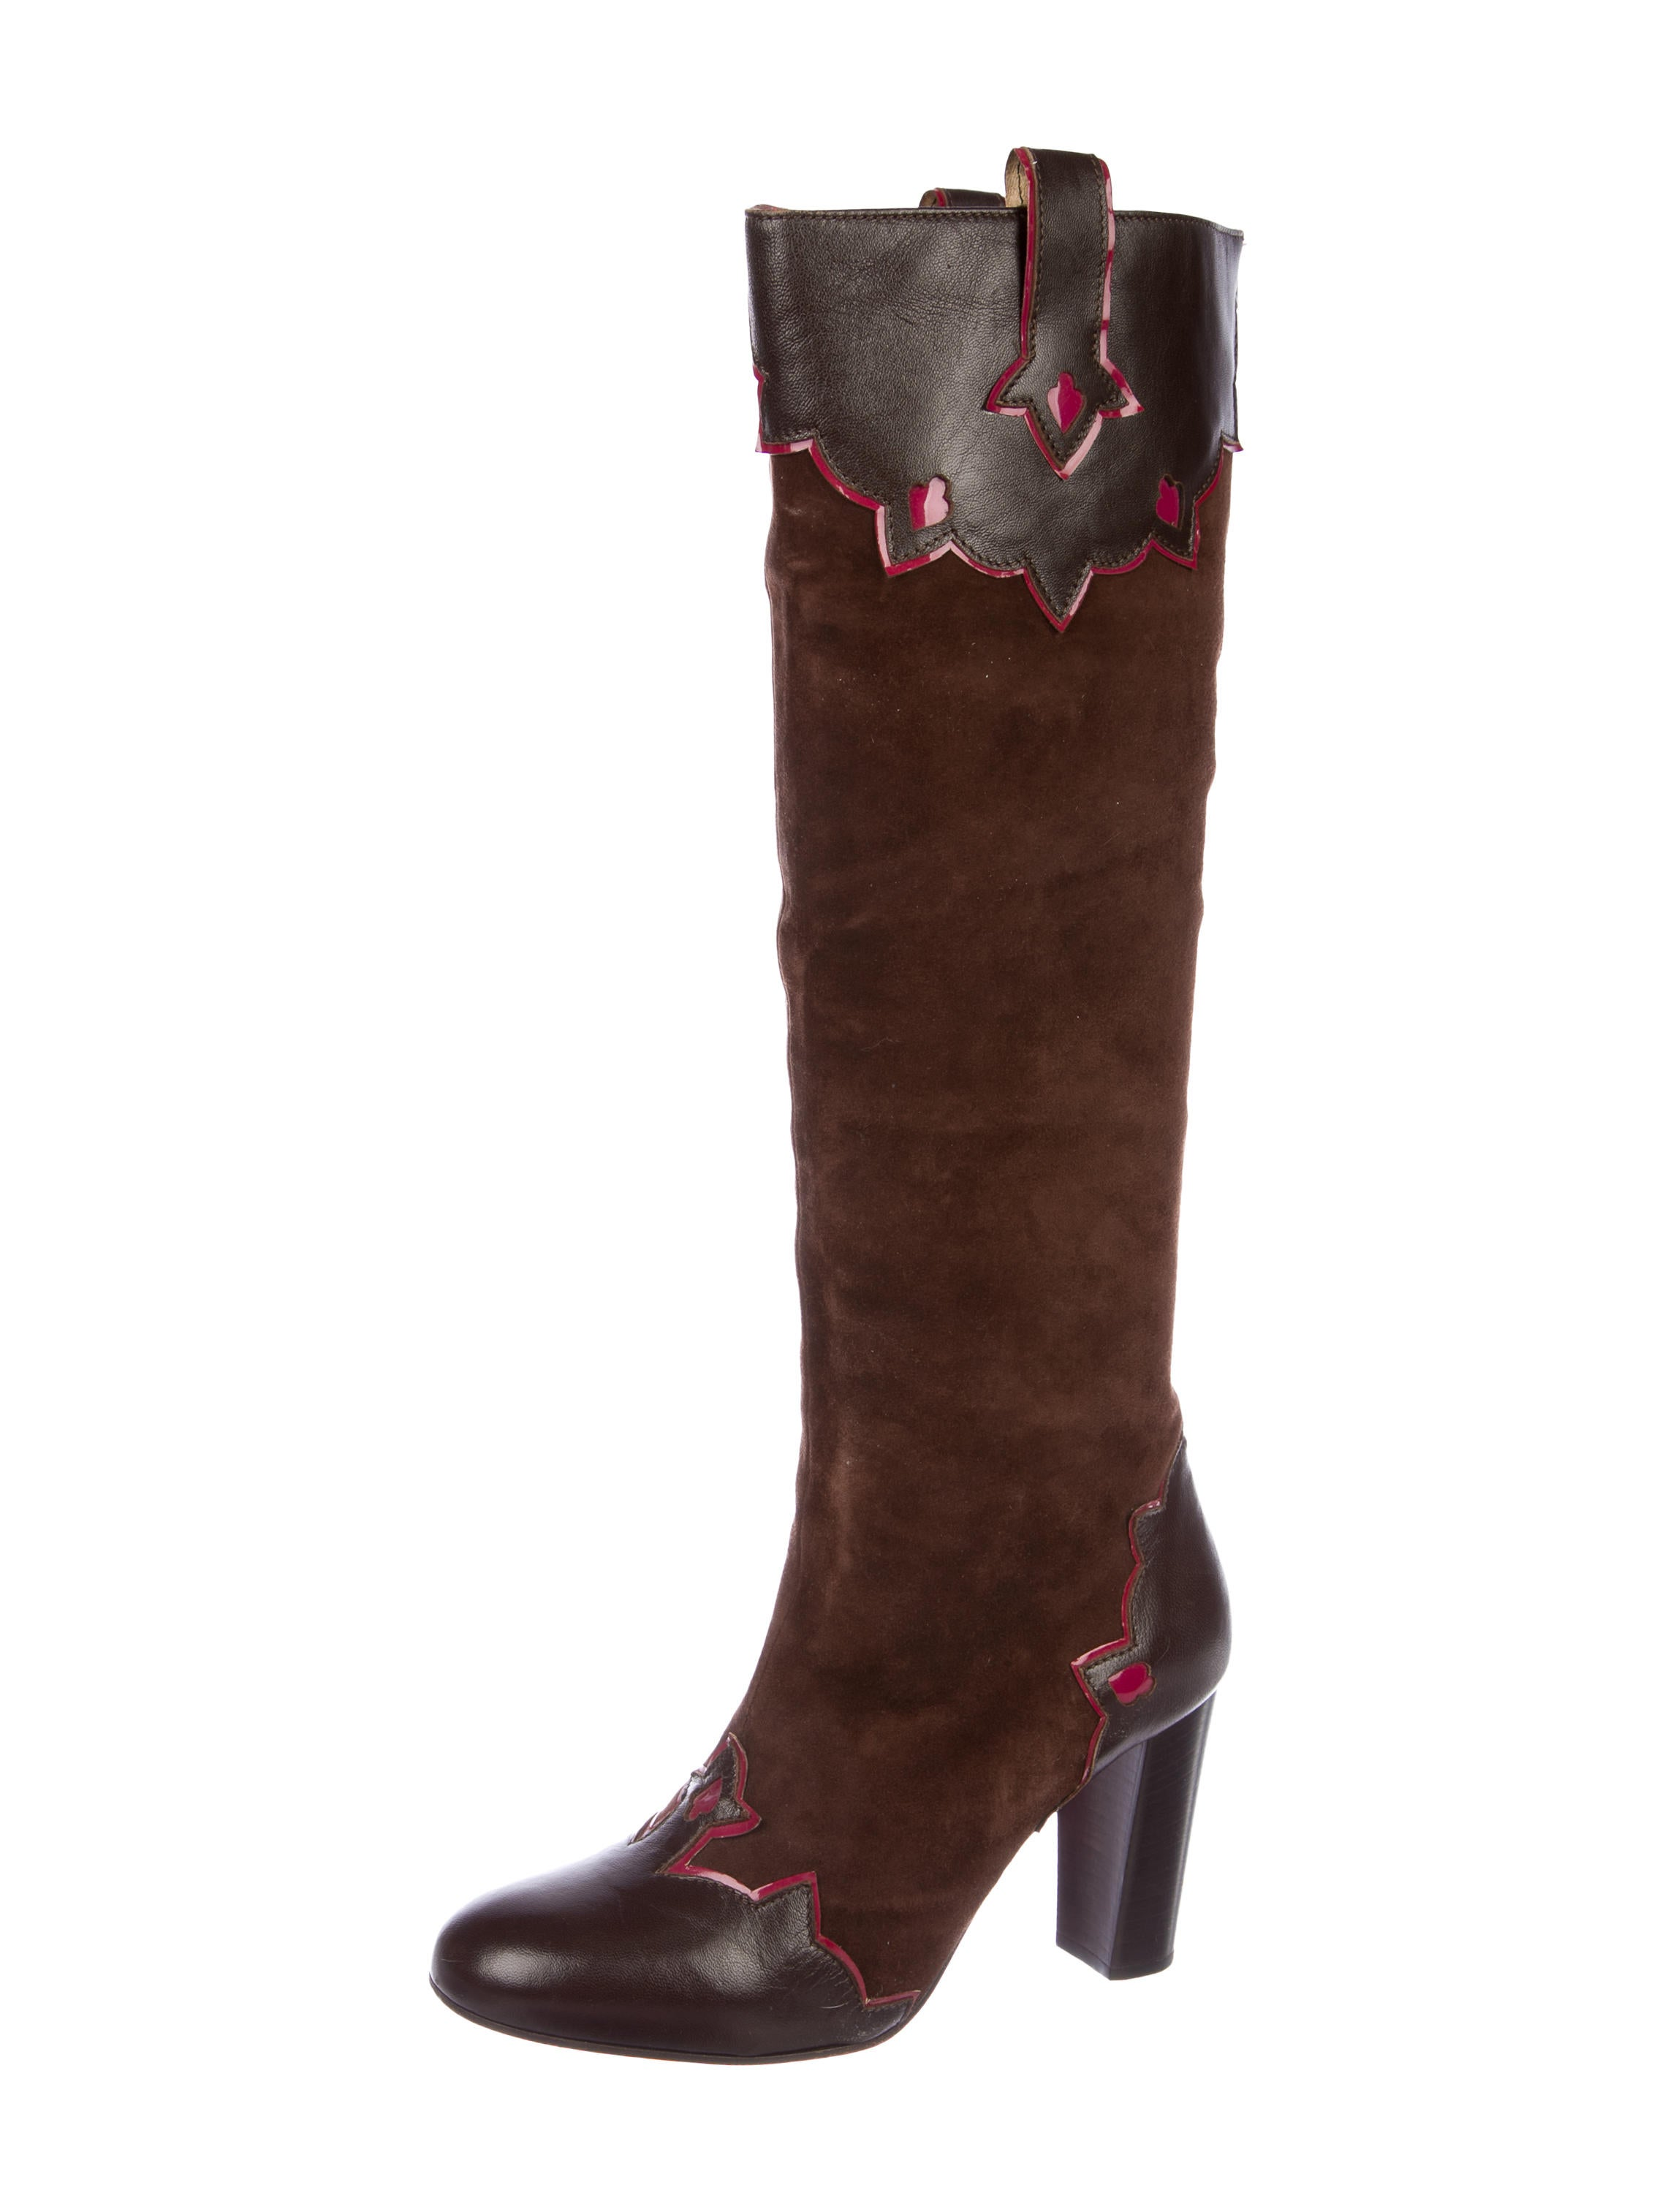 Matthew Williamson Knee-High Suede Boots